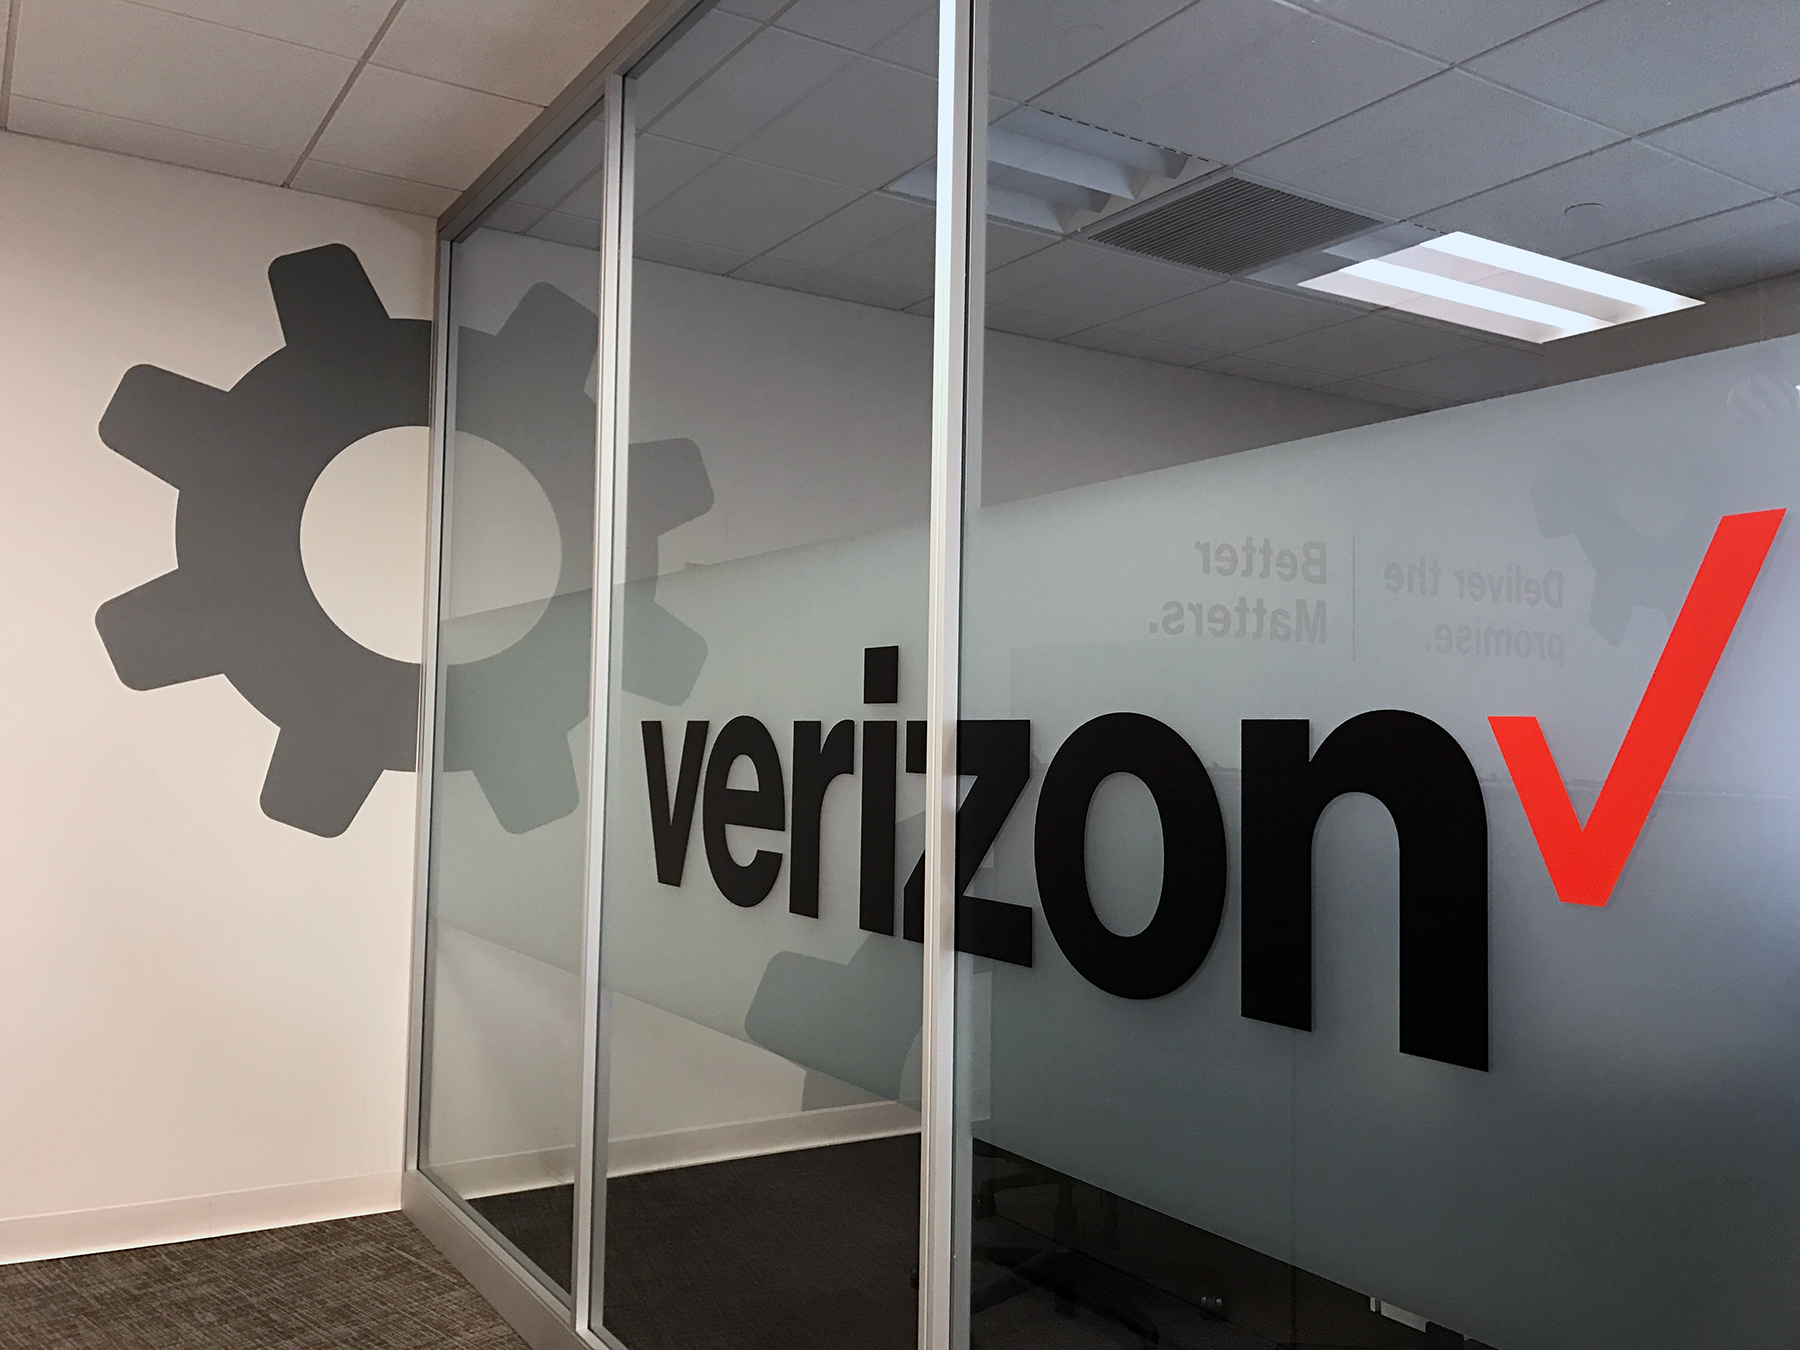 Verizon Window Graphic and Gear Icon